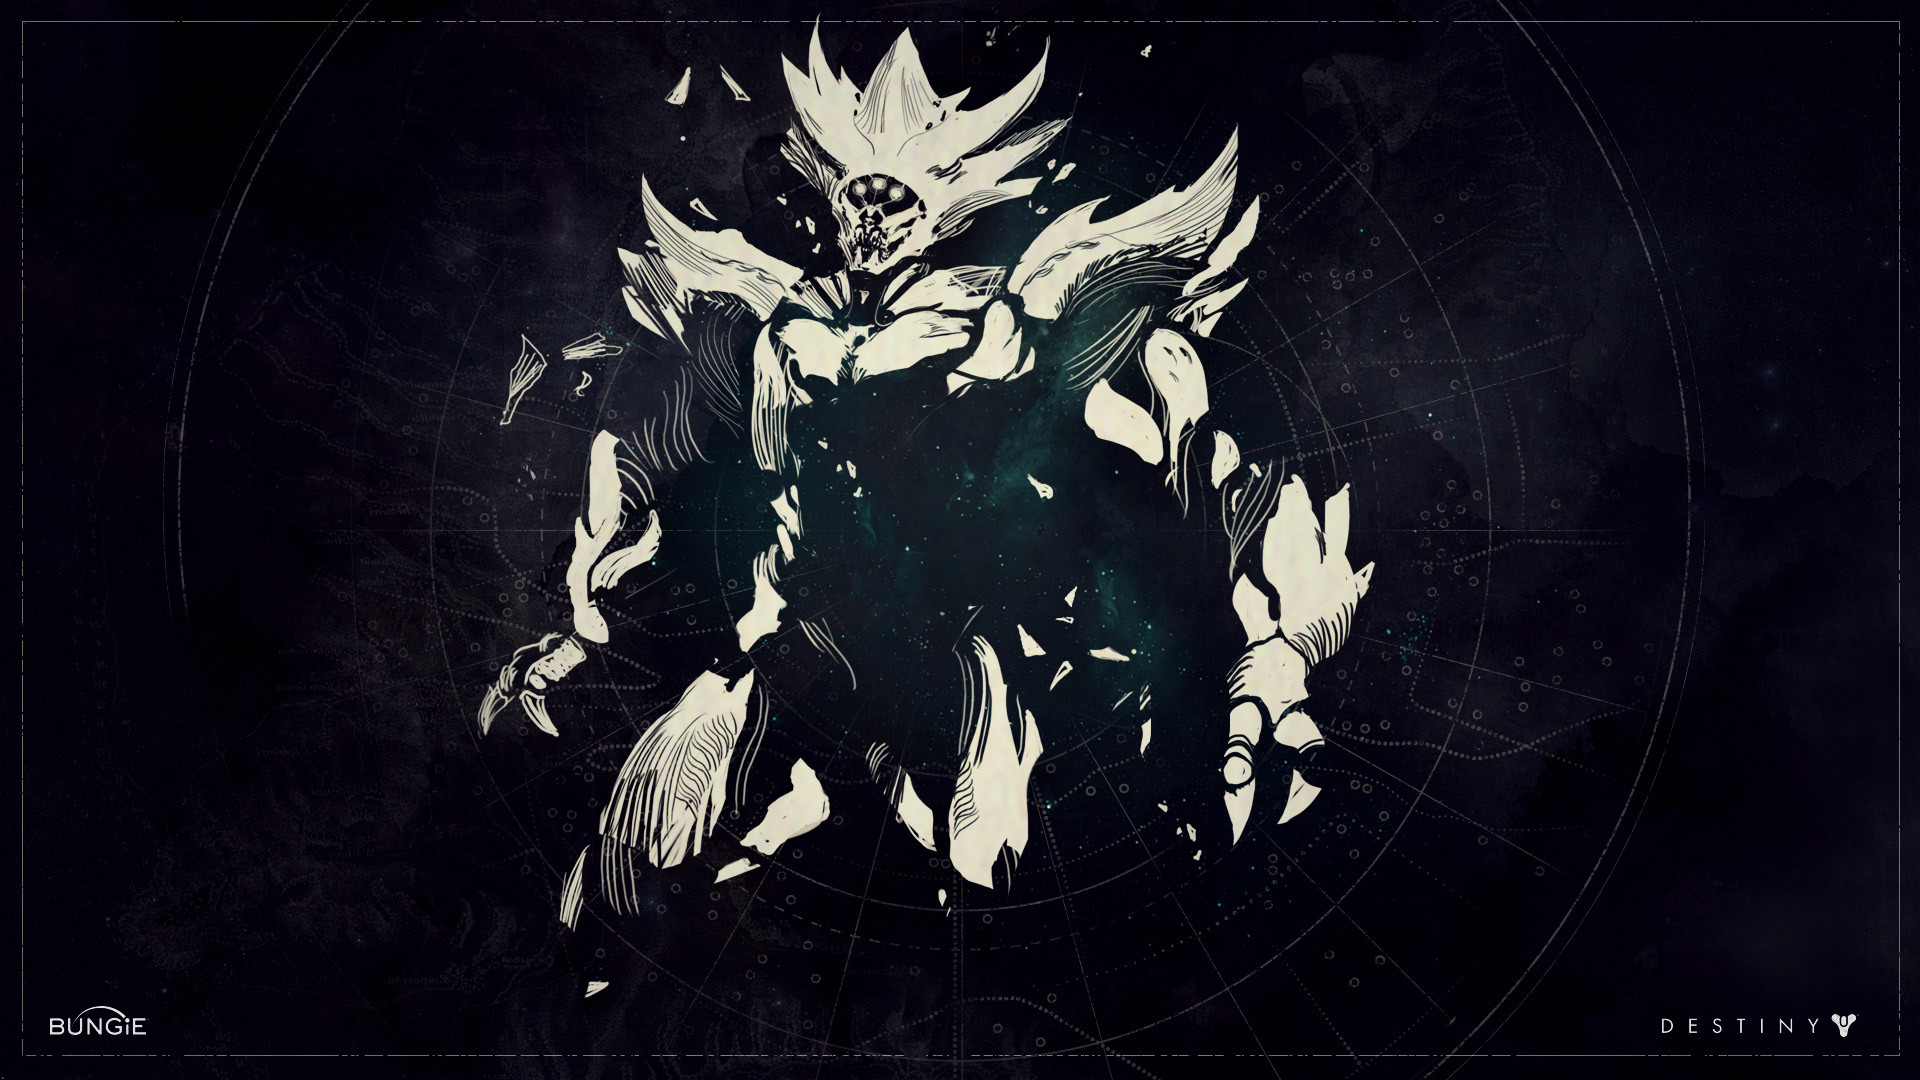 The Taken King - Destiny